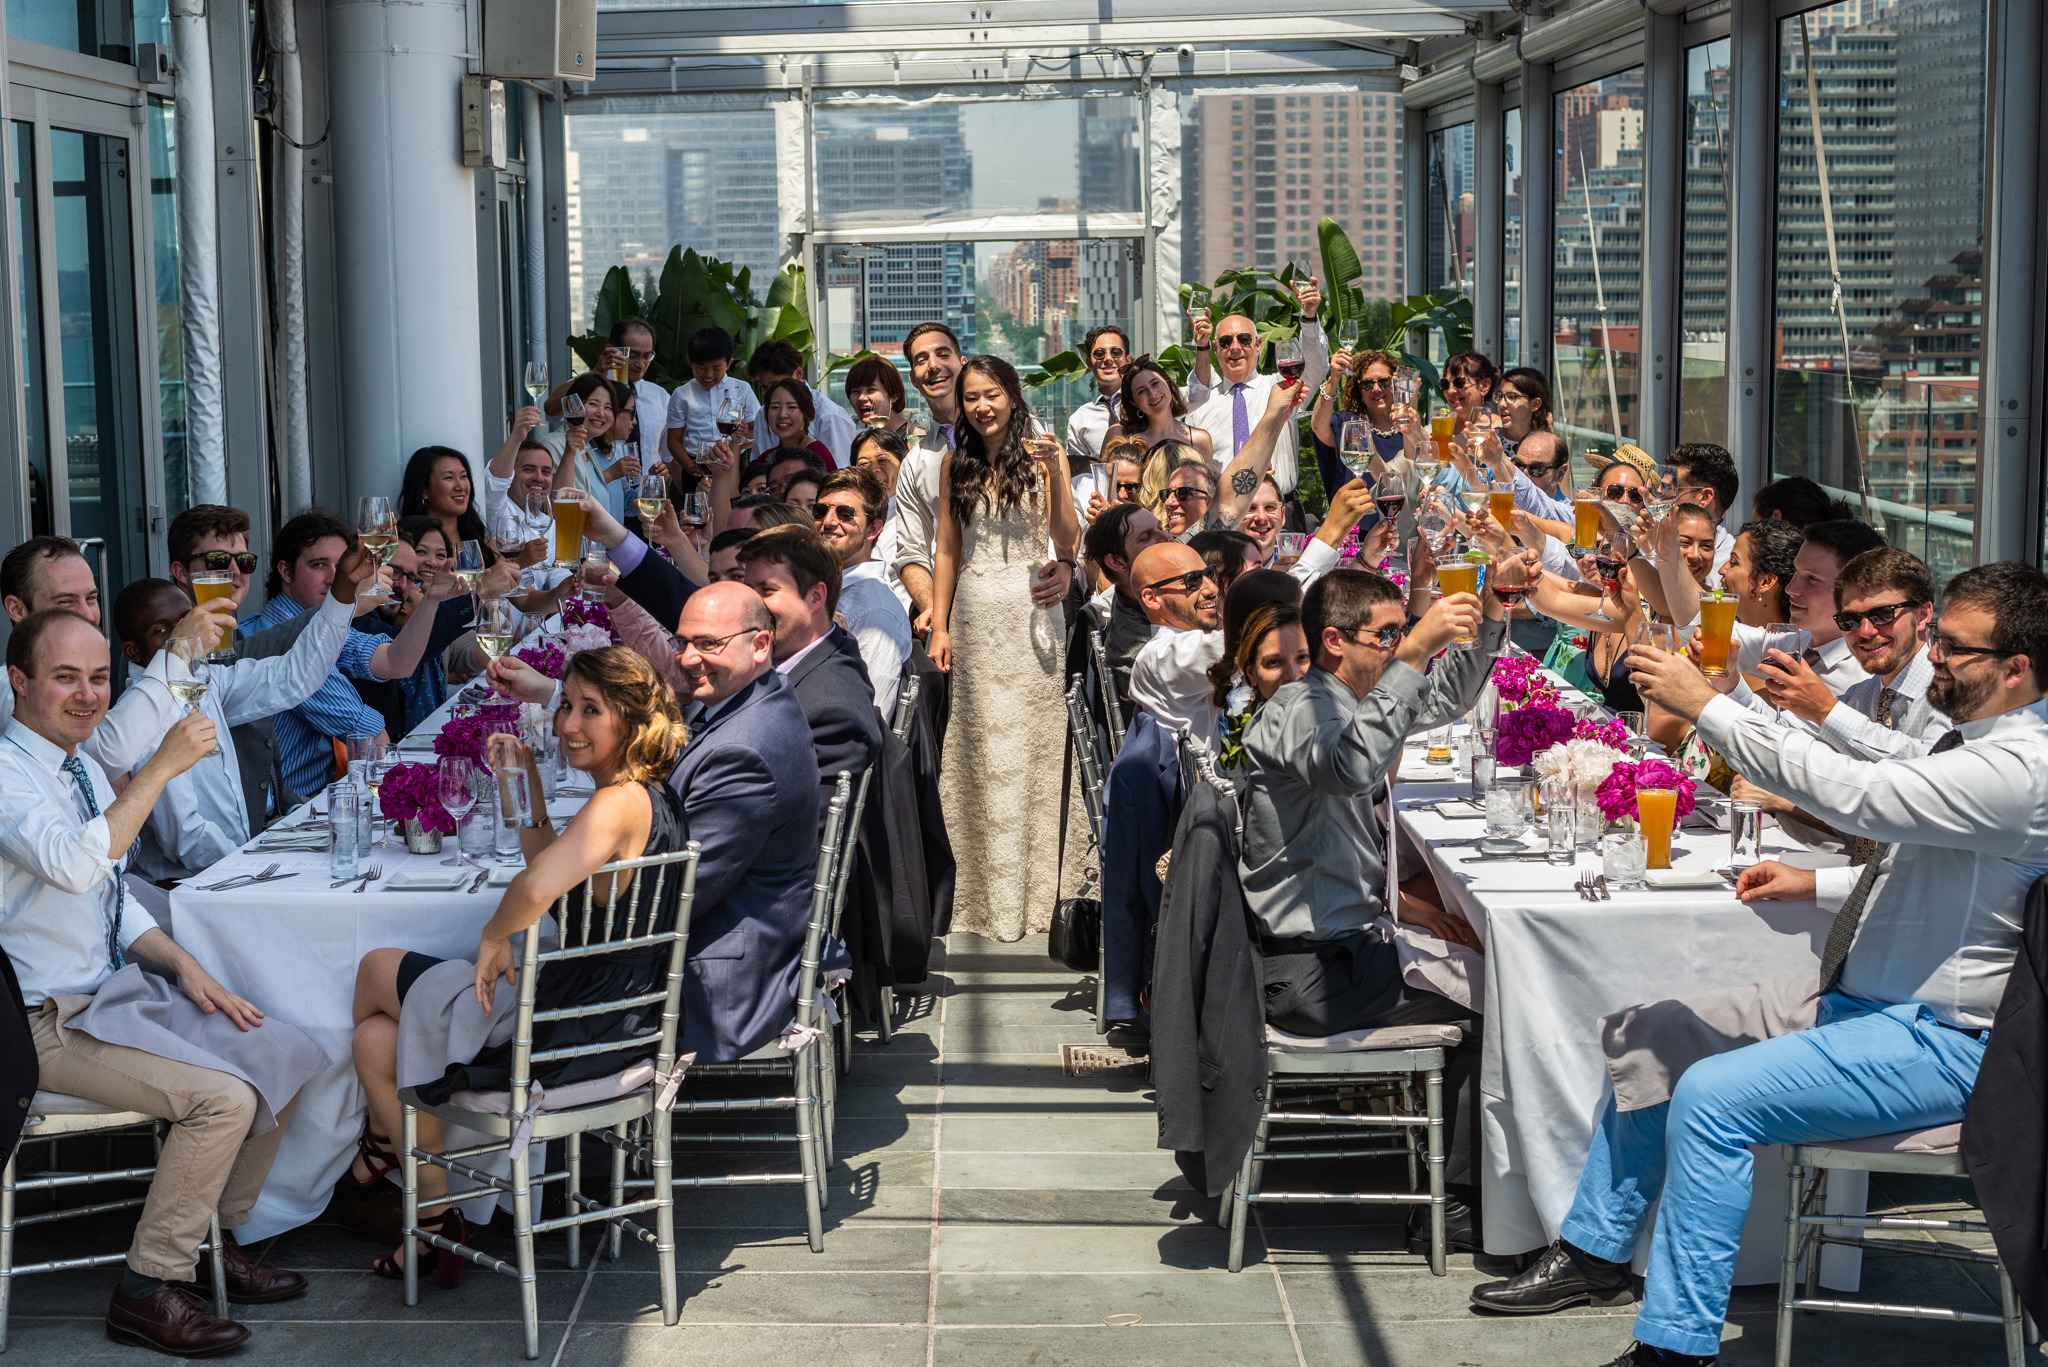 Saki & Zach's Wedding by Romina Hendlin-020.jpg